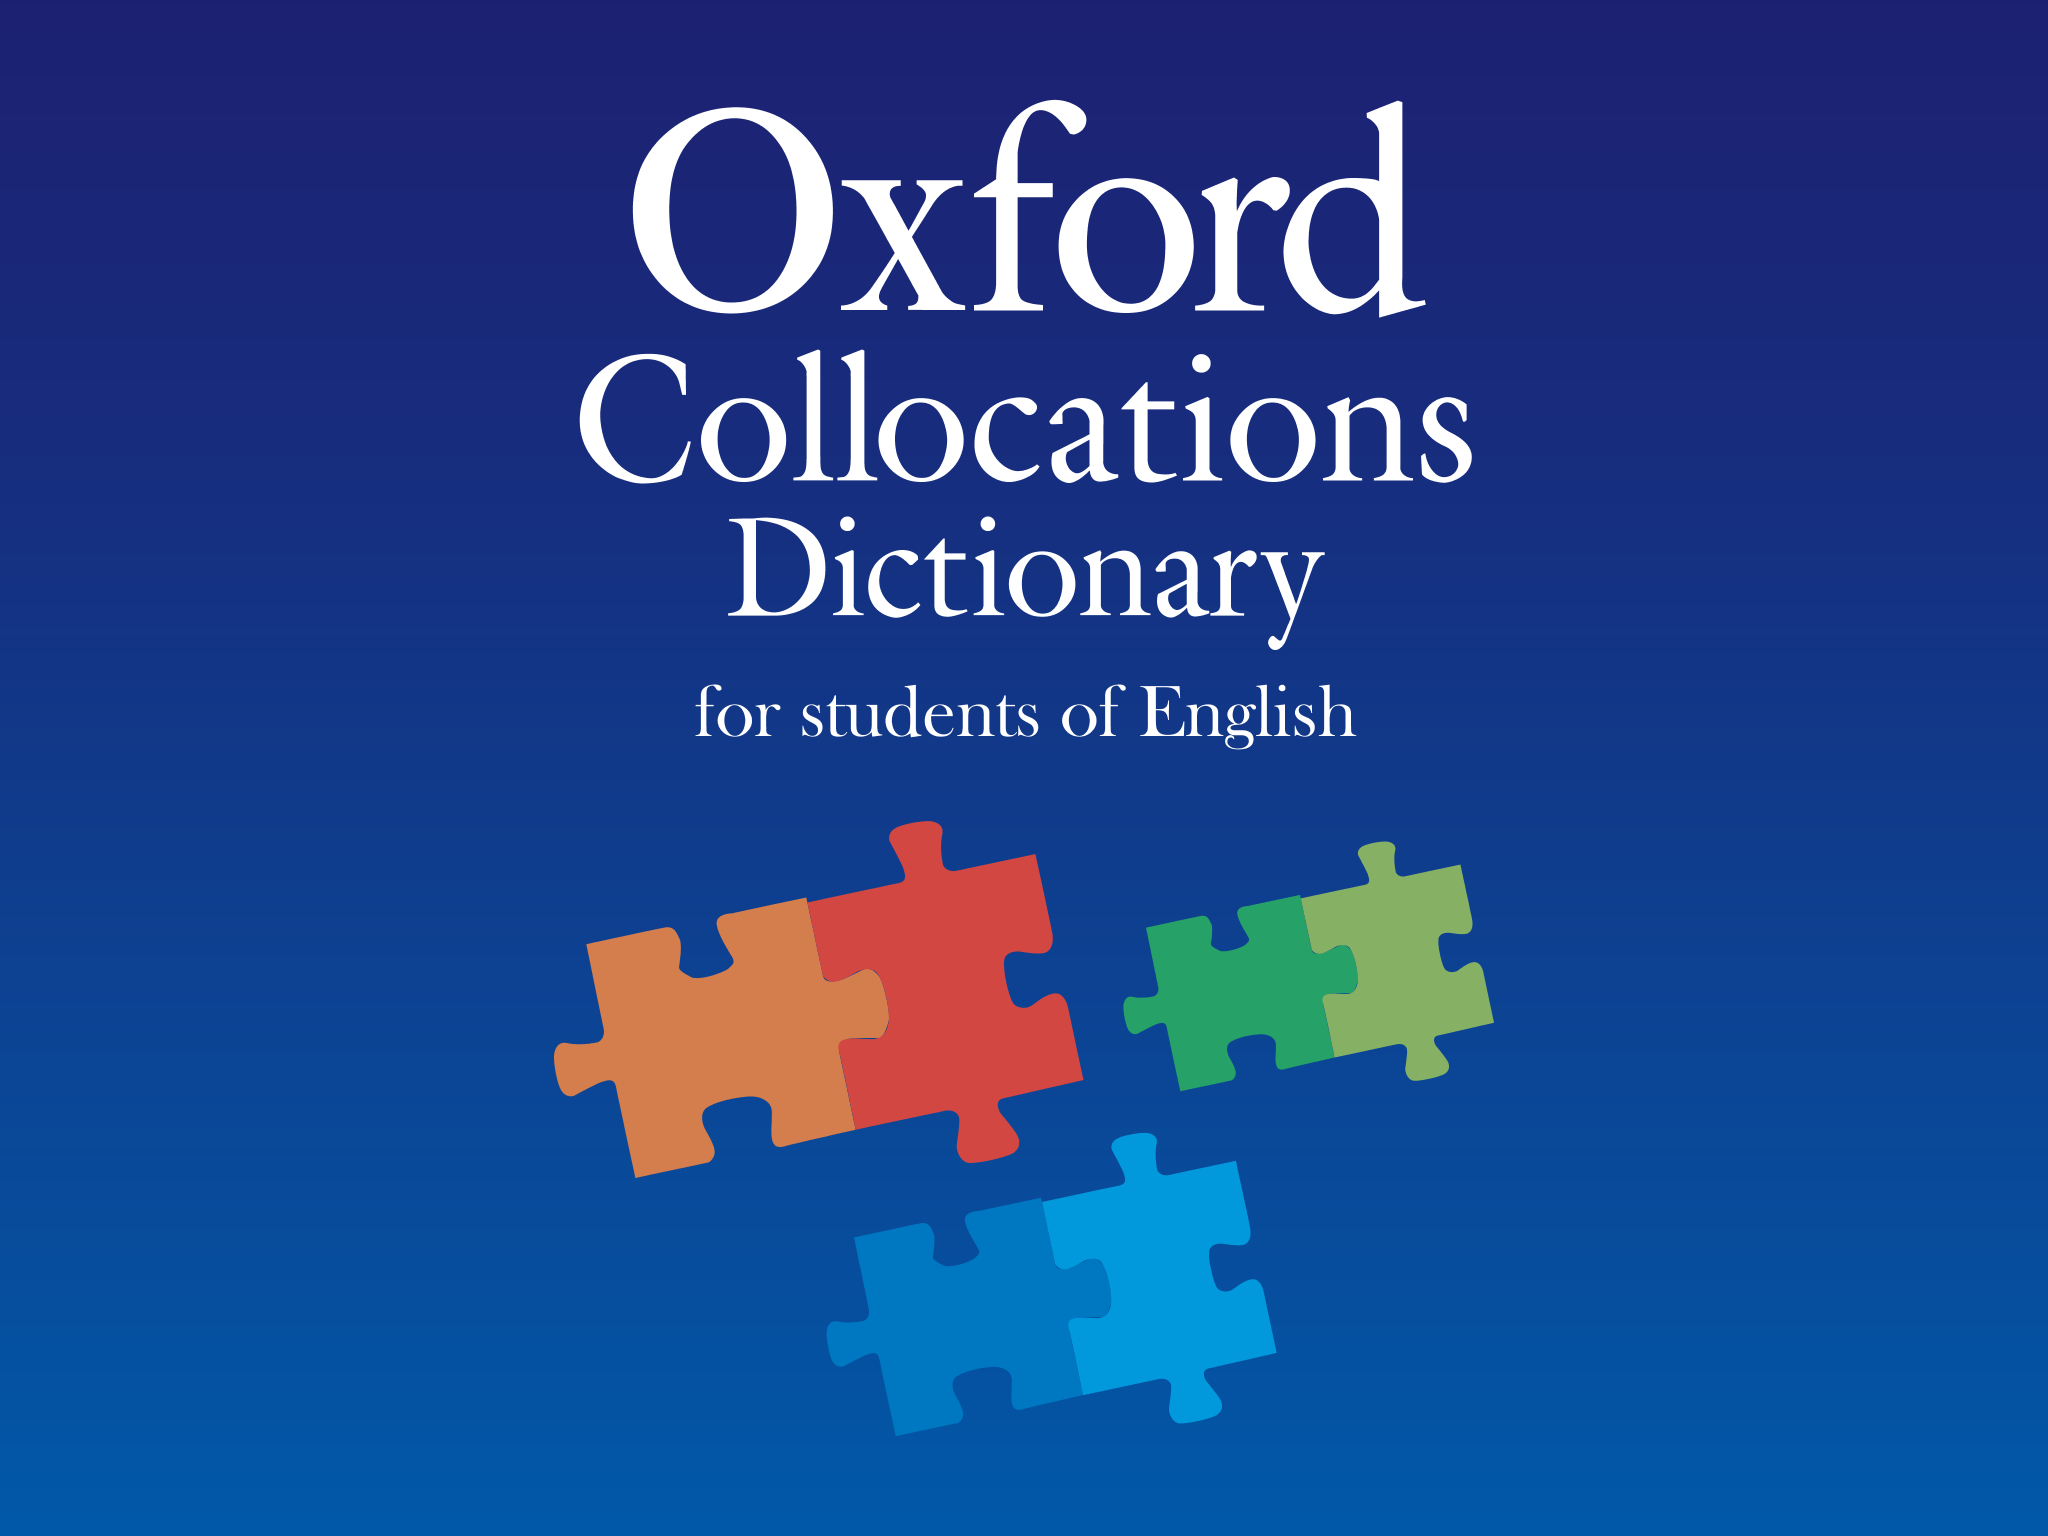 The New Oxford Collocations Dictionary For Students Of English App